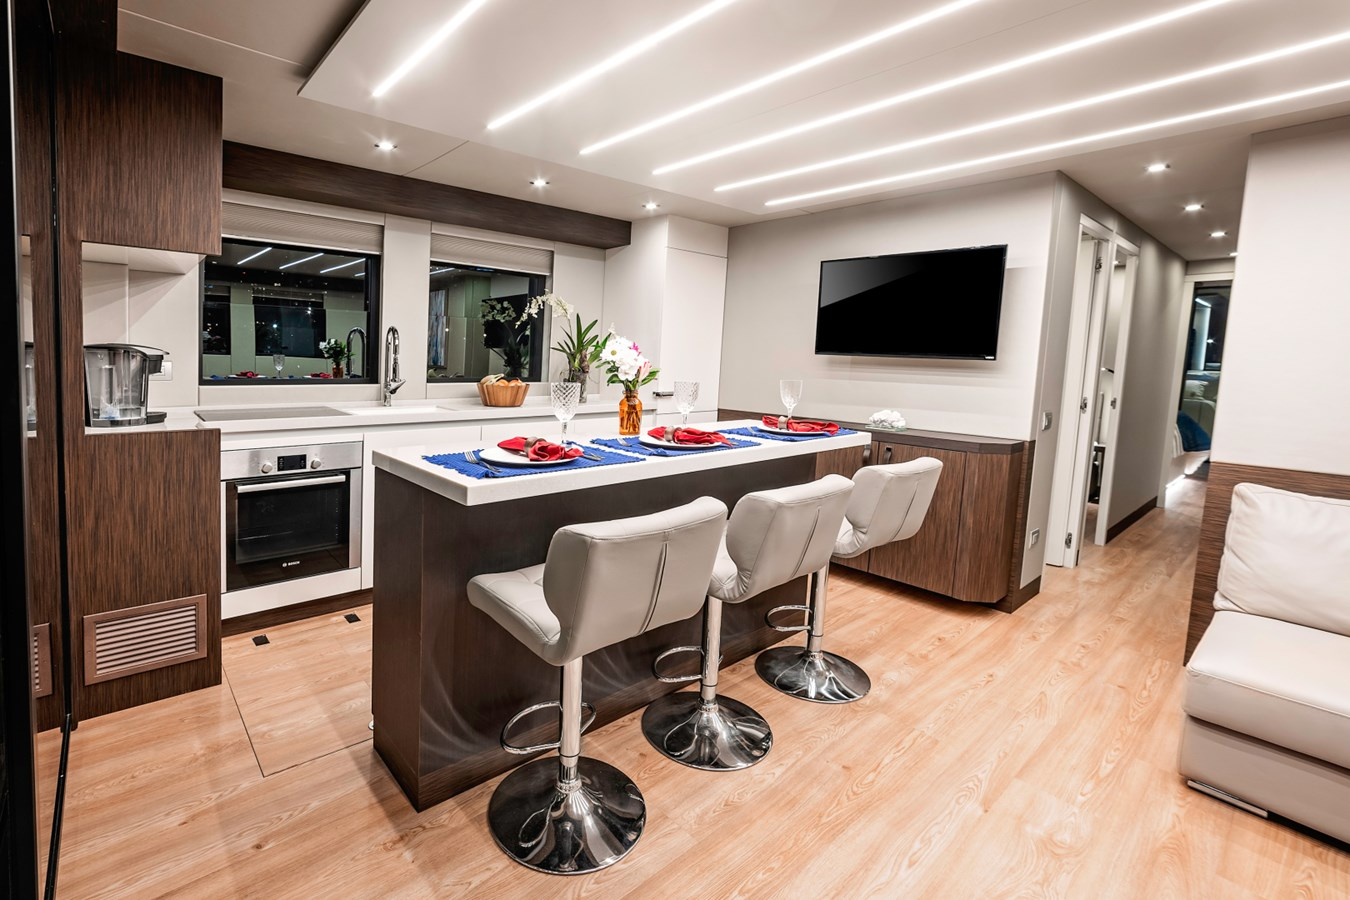 54 Overblue Power-Cat Galley 2018 Overblue 54 Power-Cat Catamaran 2806165